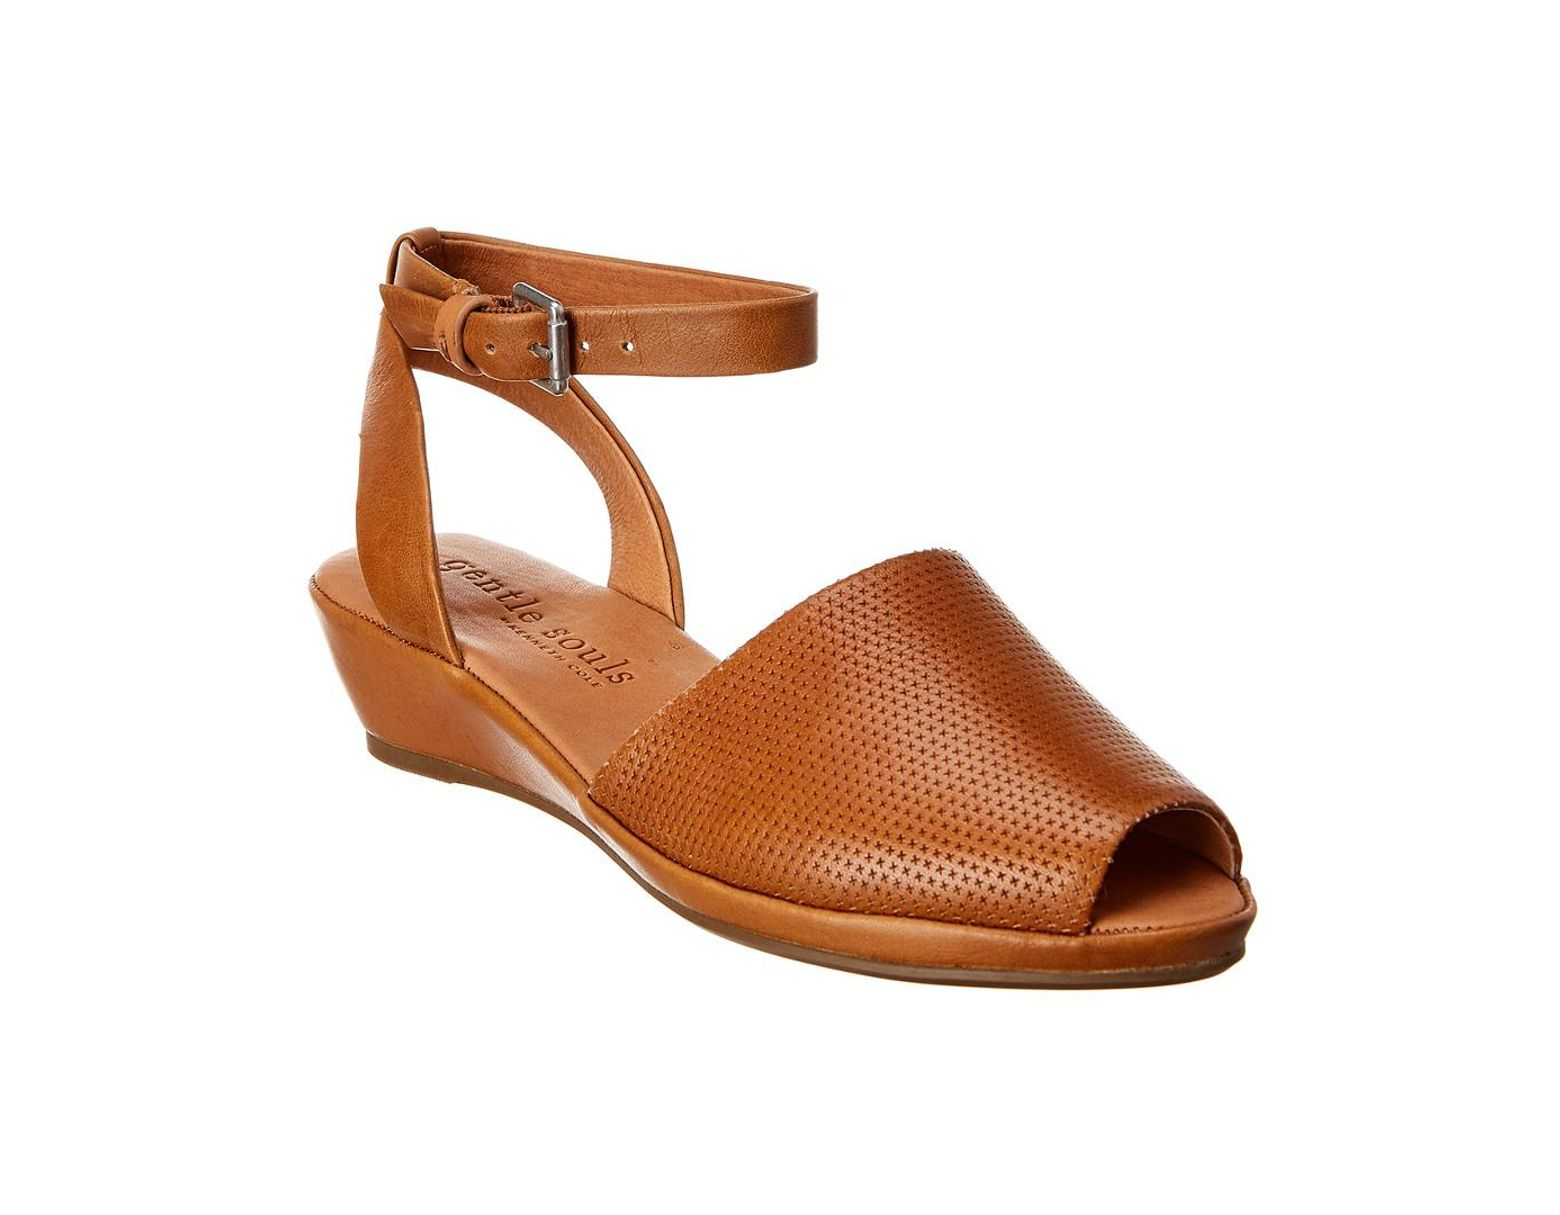 587a4c5bff8 Gentle Souls Lily Ankle Wrap 2 Leather Wedge Sandal in Brown - Lyst